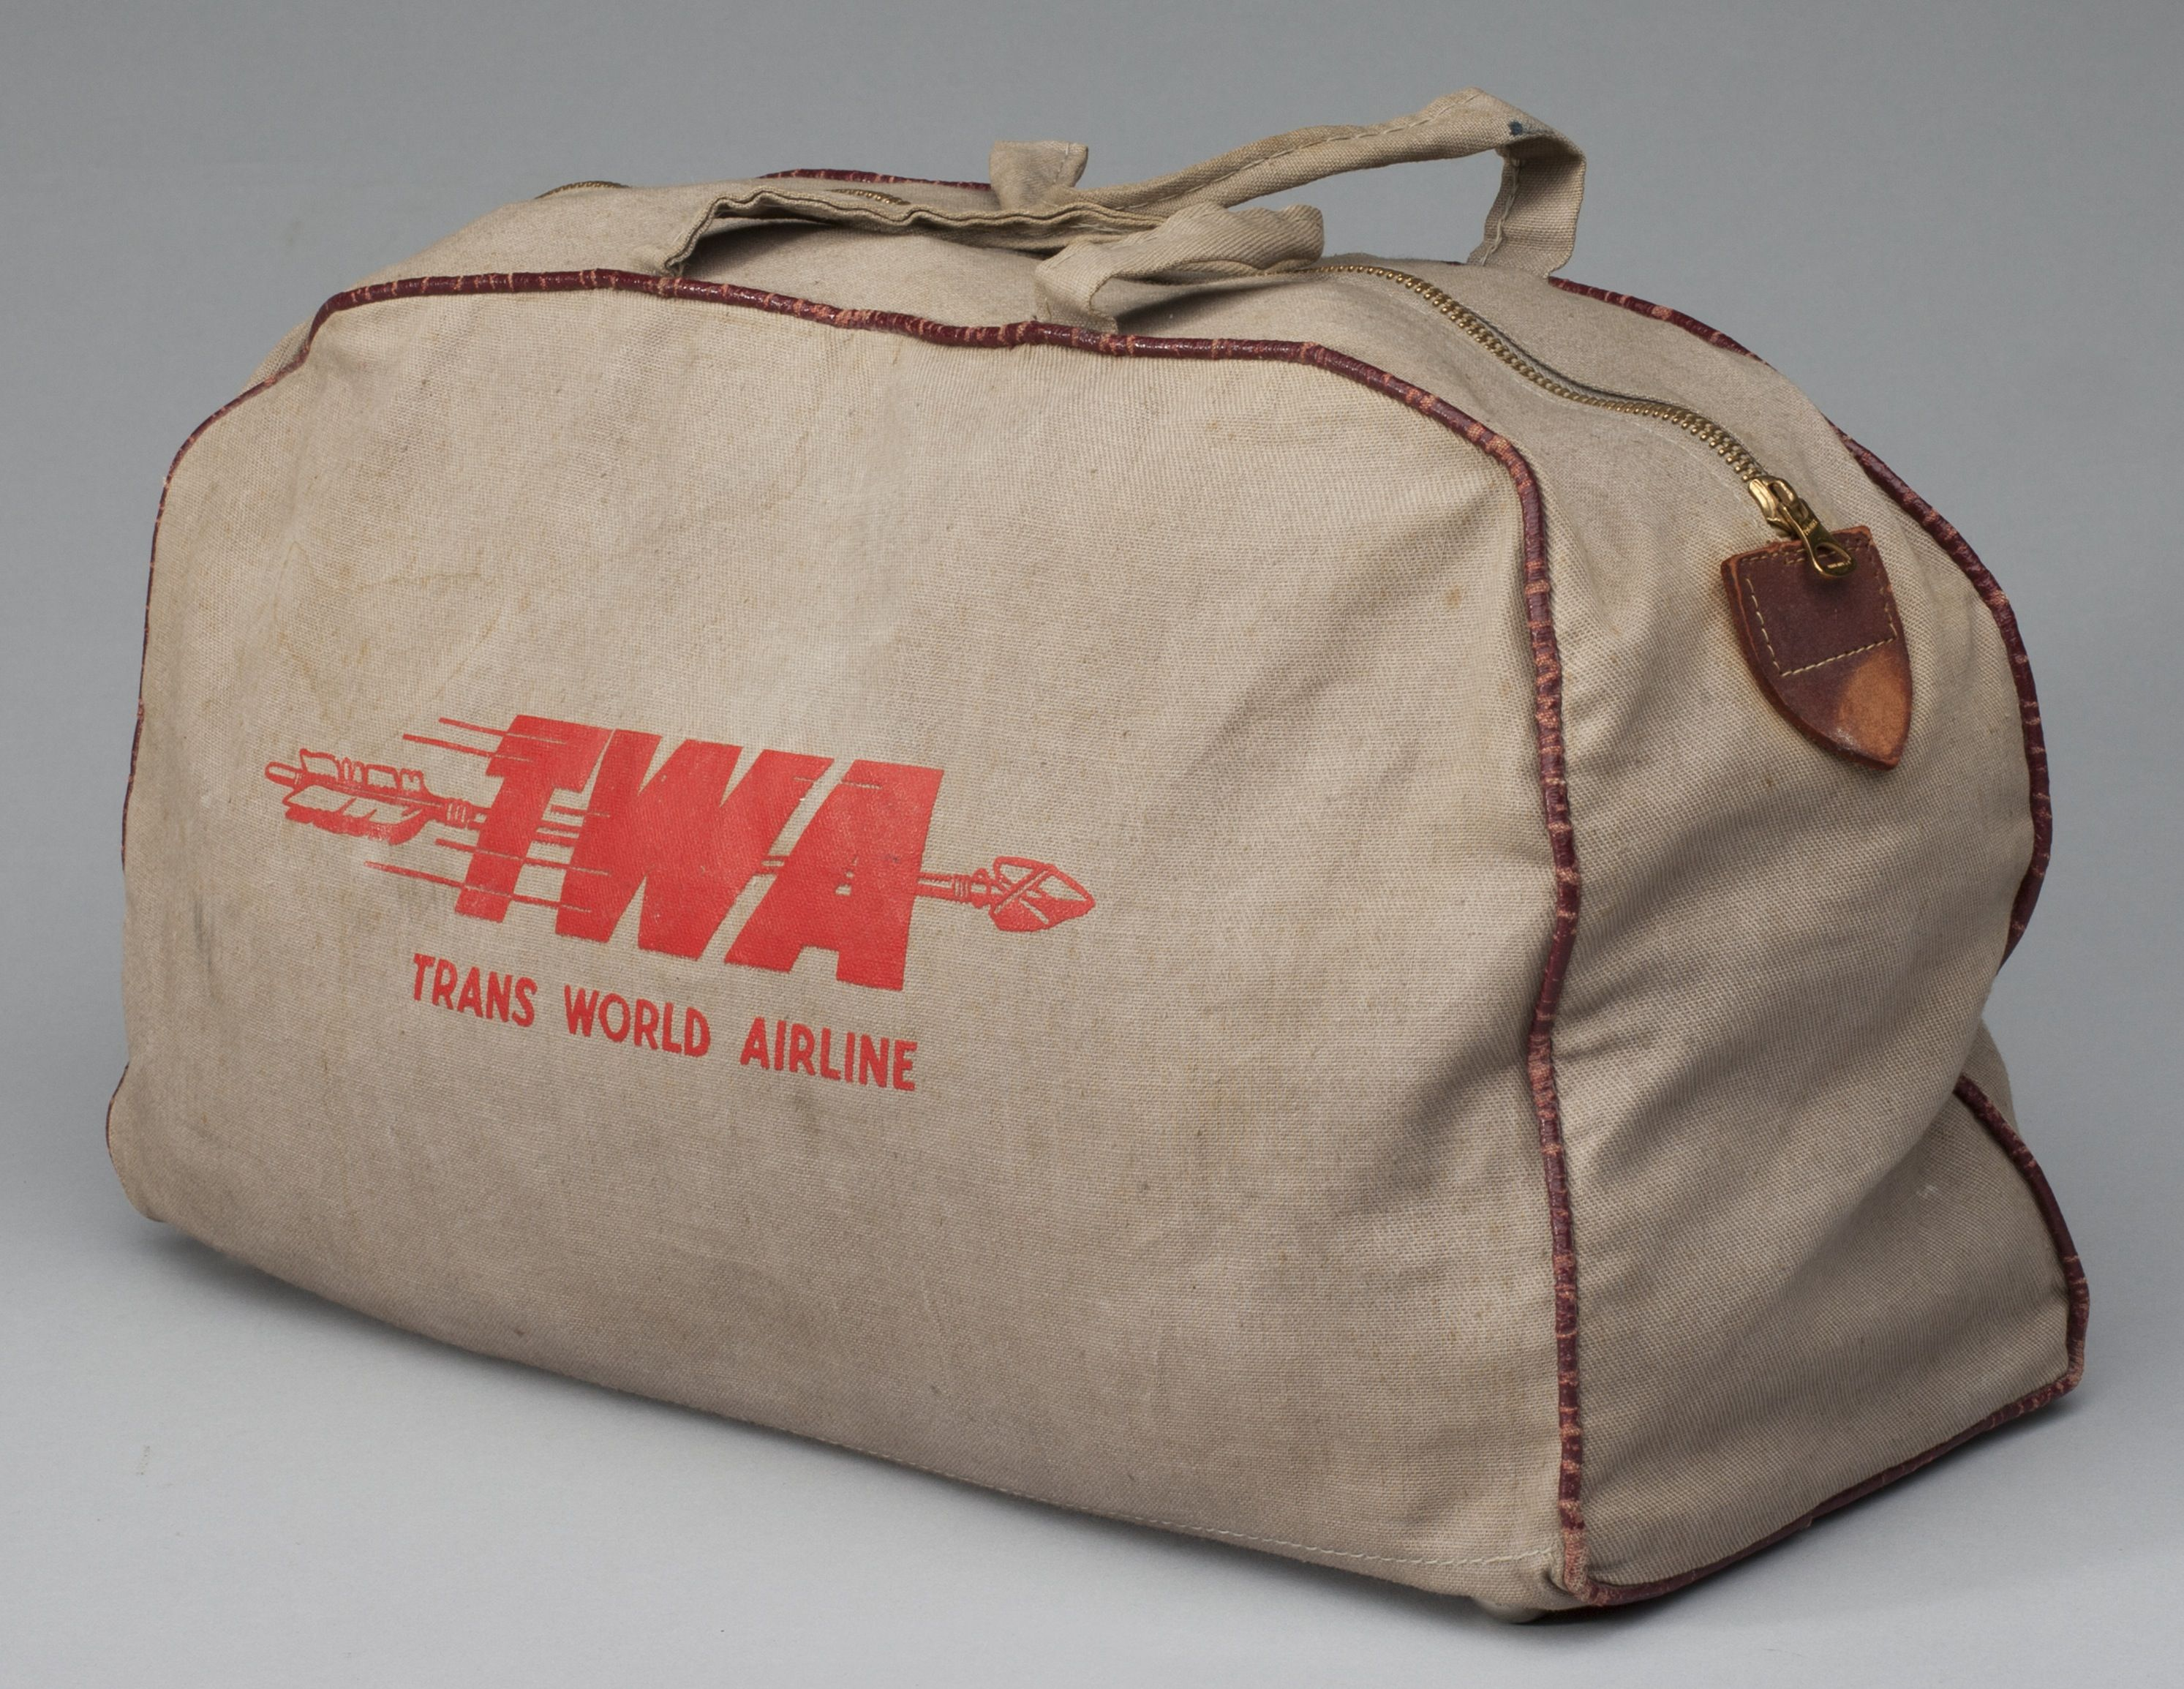 Pin by SFO Museum on Airline Bags in 2019 Bags, World